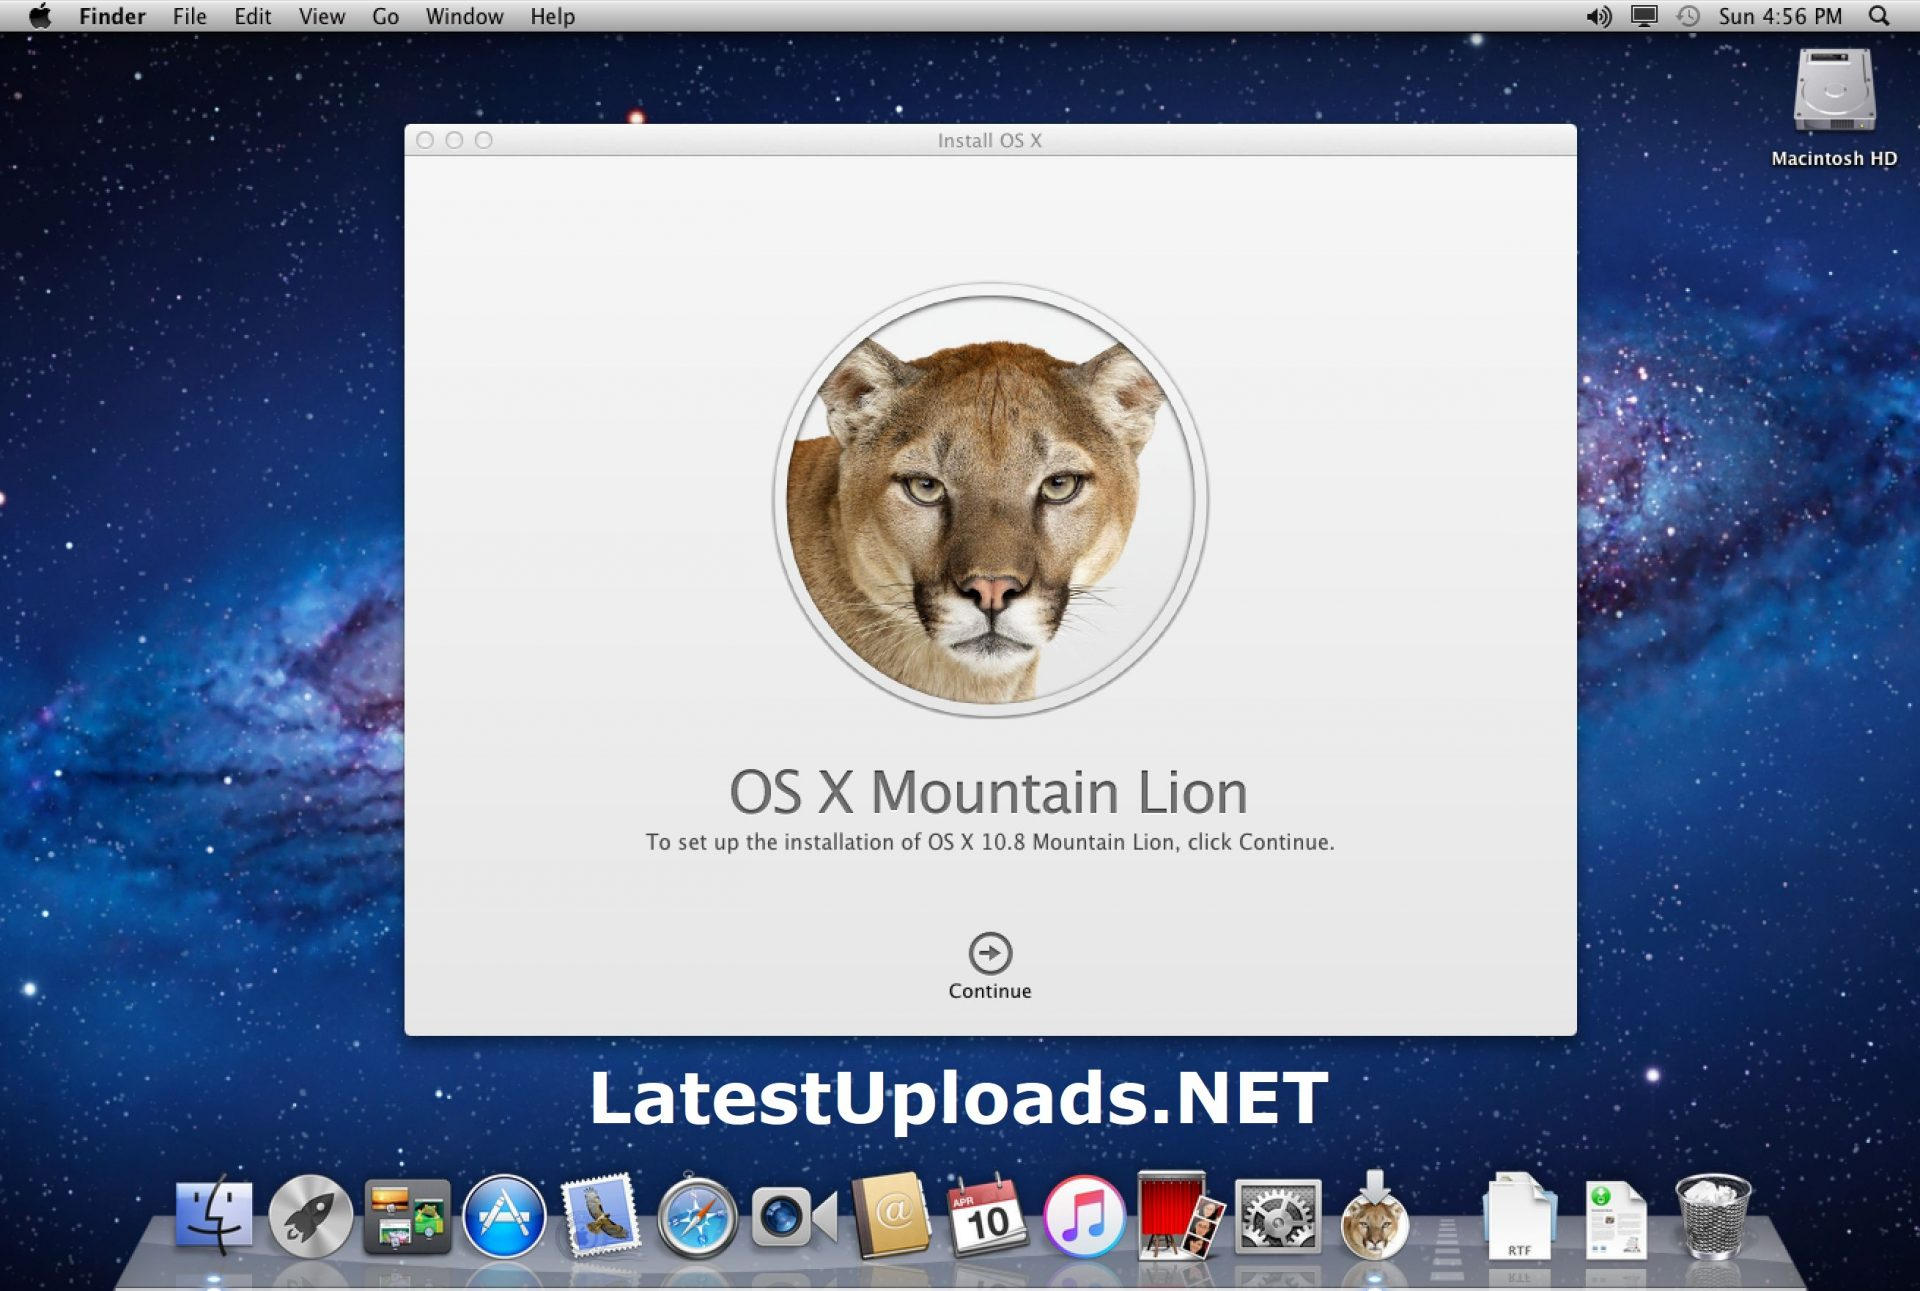 OS X Mountain Lion Crack, OS X Mountain Lion Download, MAC OS X Mountain Lion DMG Download, MAC OS X Mountain Lion DMG 10.8 Download